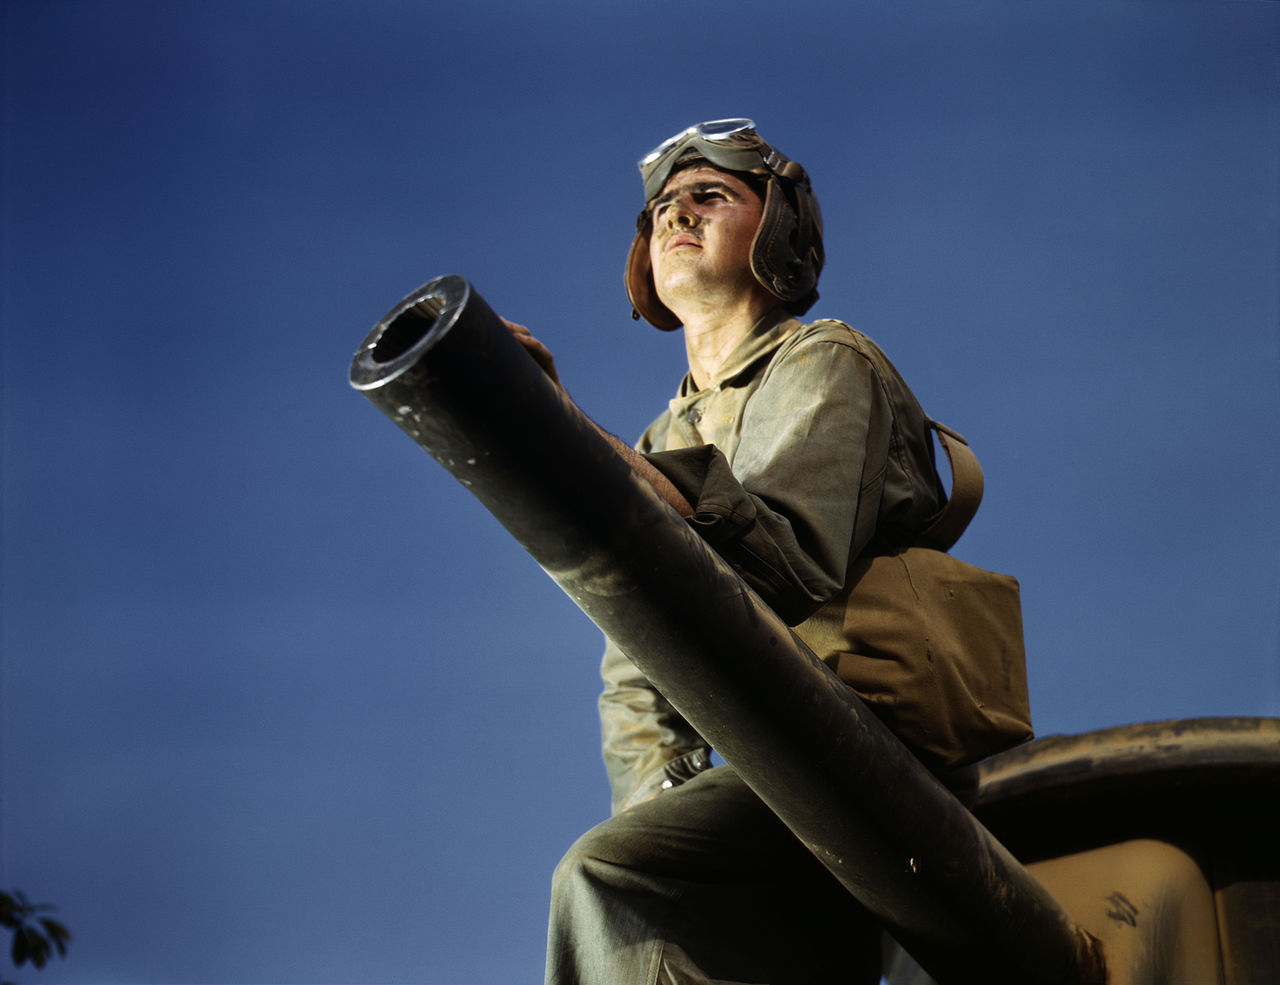 Crewman of an M-3 tank, Ft. Knox, KY, 1942